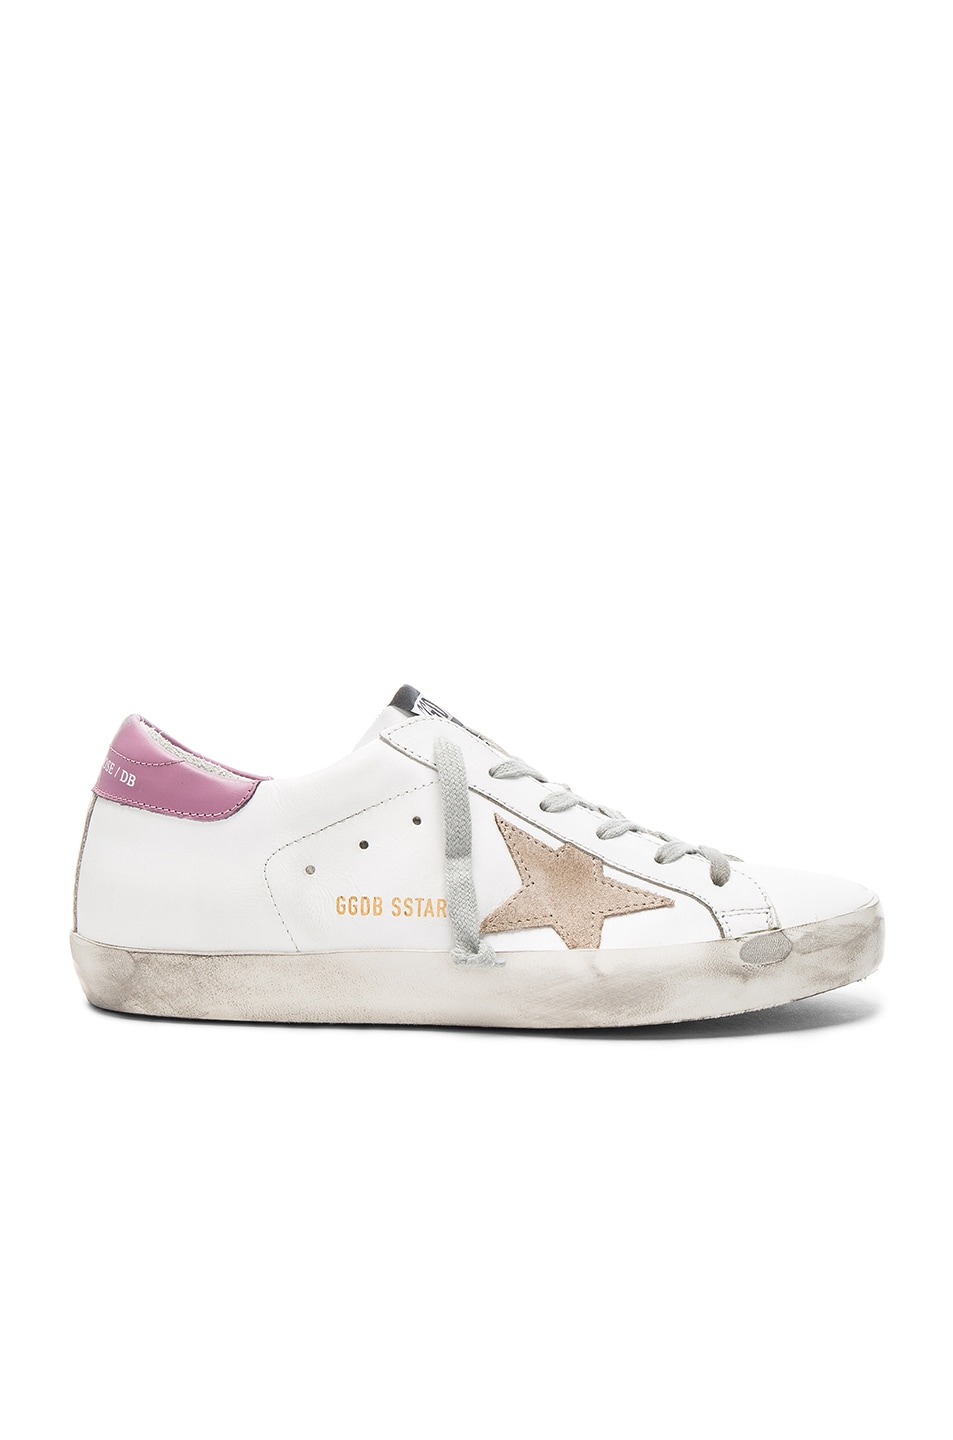 Image 1 of Golden Goose Leather Superstar Sneakers in Dark Lilac & White